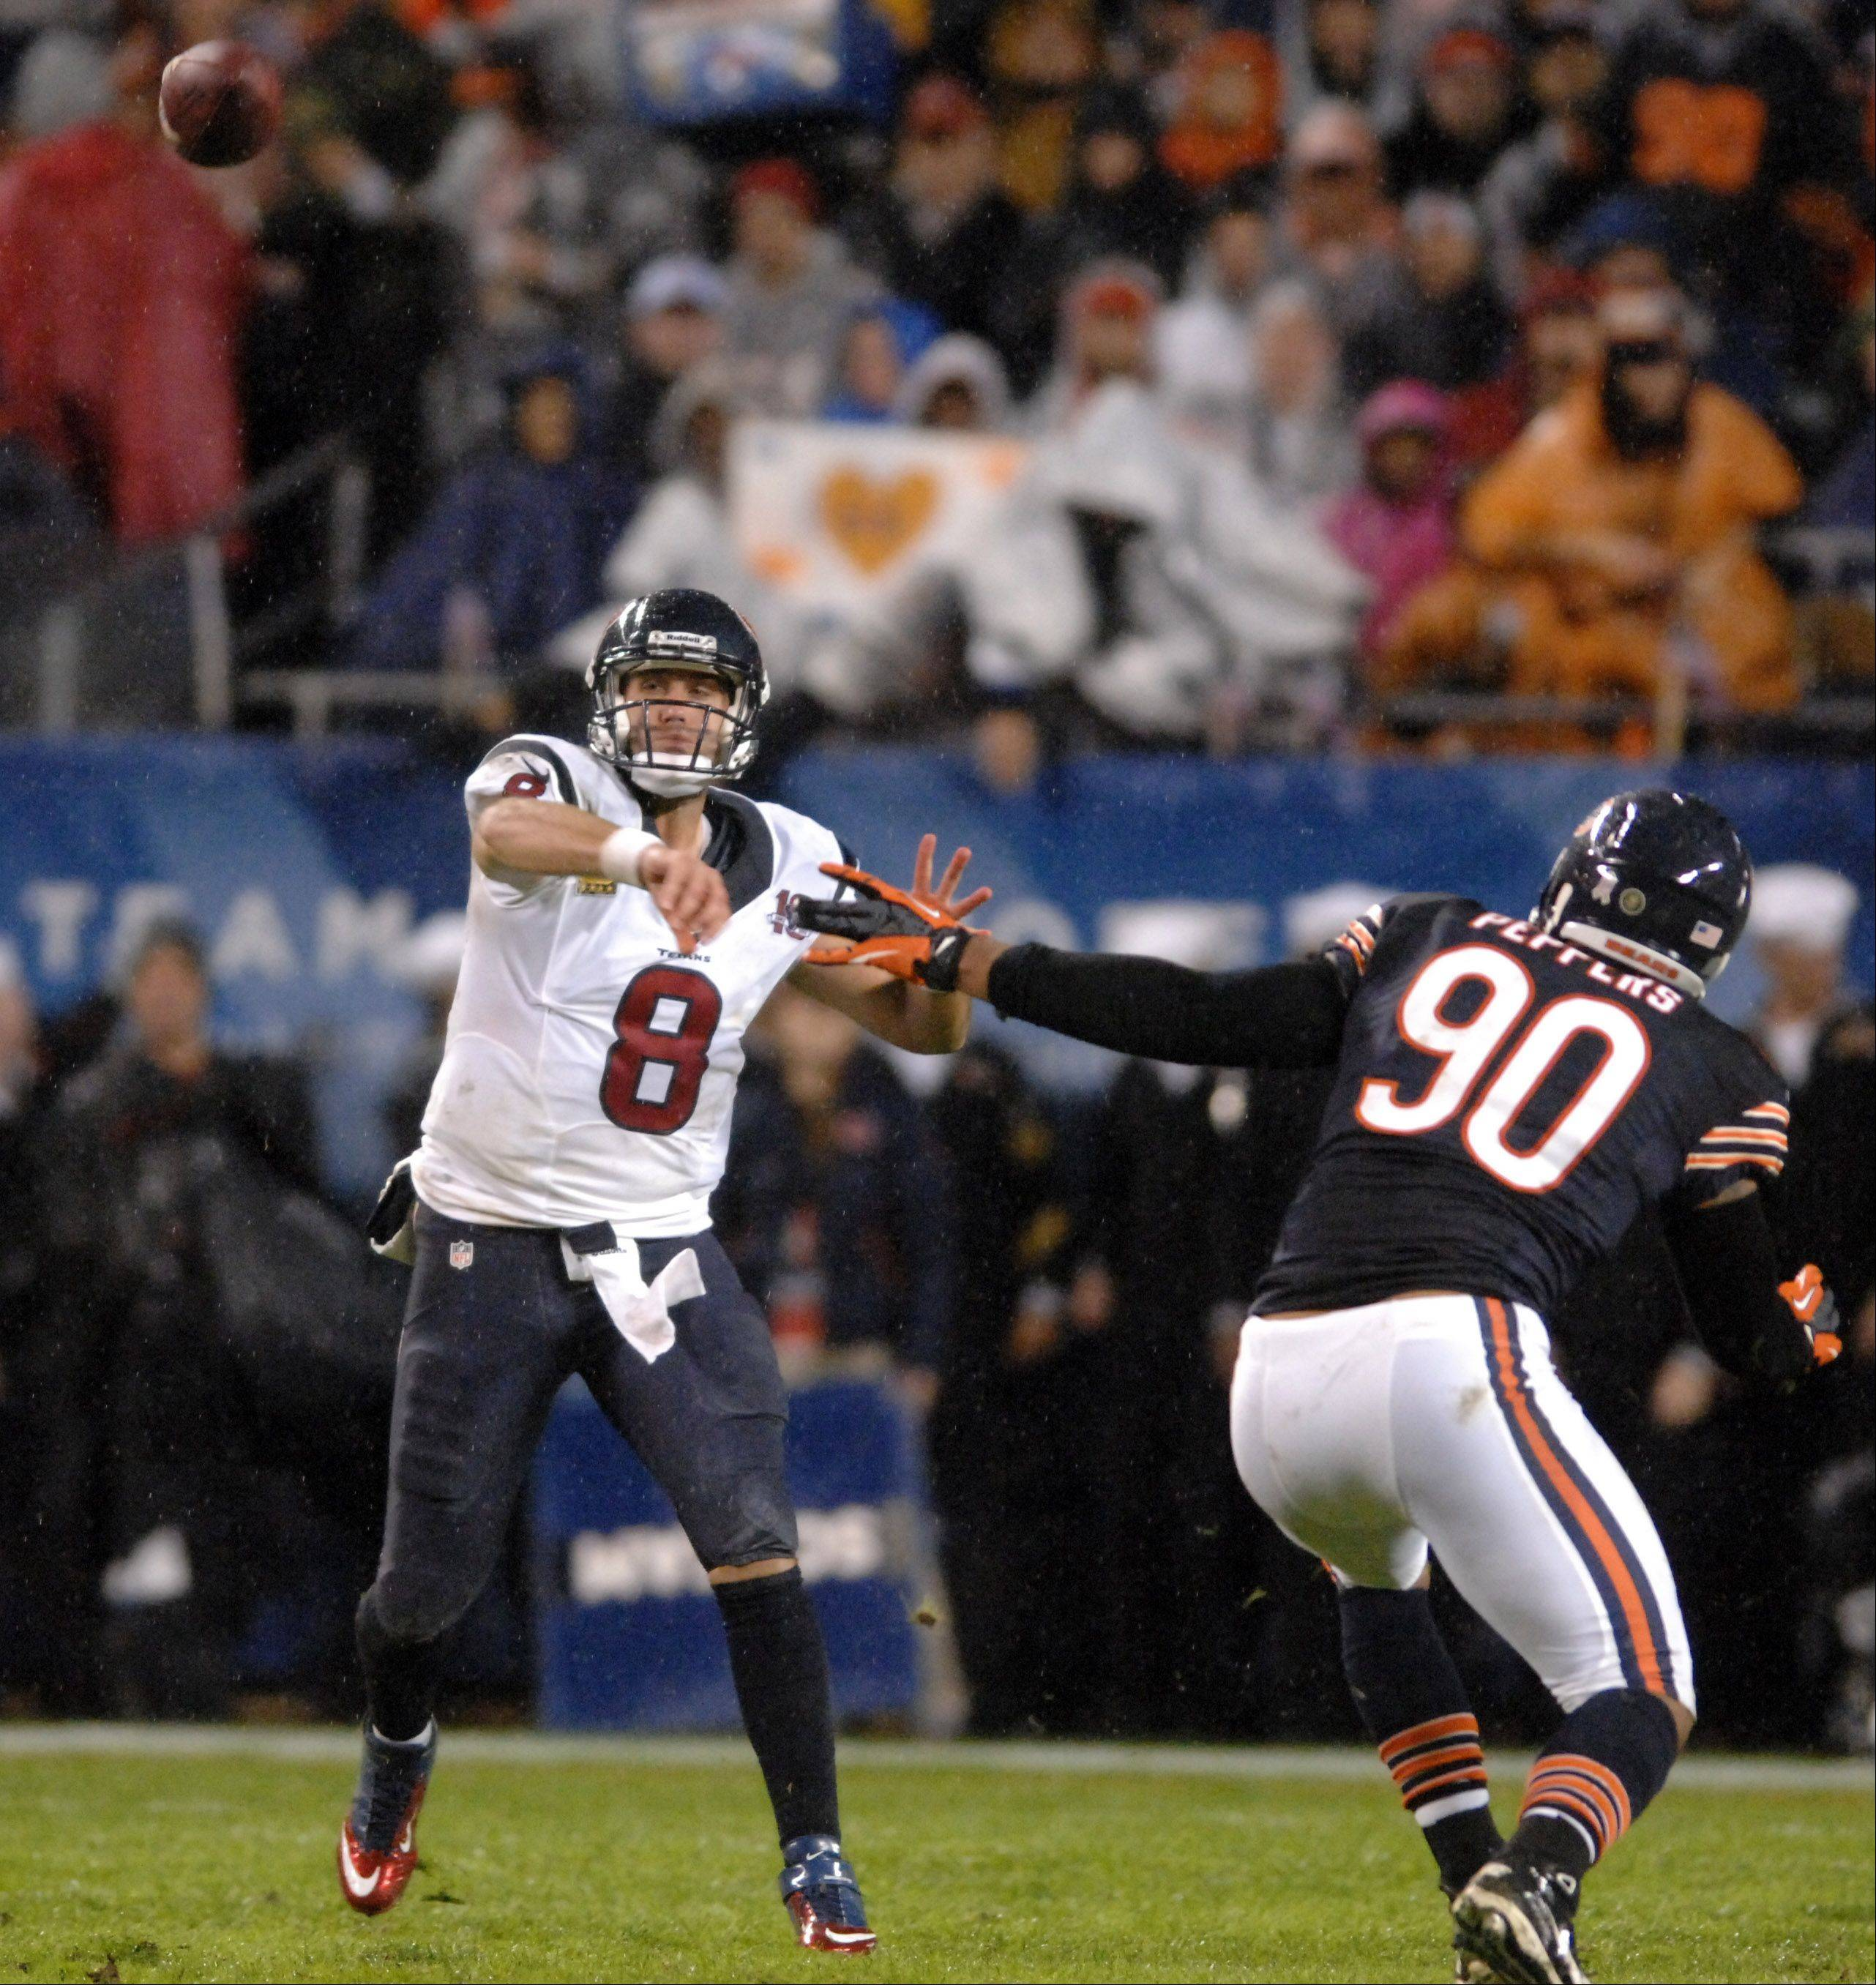 Houston Texans quarterback Matt Schaub (8) fires a pass that is intercepted the Chicago Bears cornerback Tim Jennings (26) during Sunday's game.